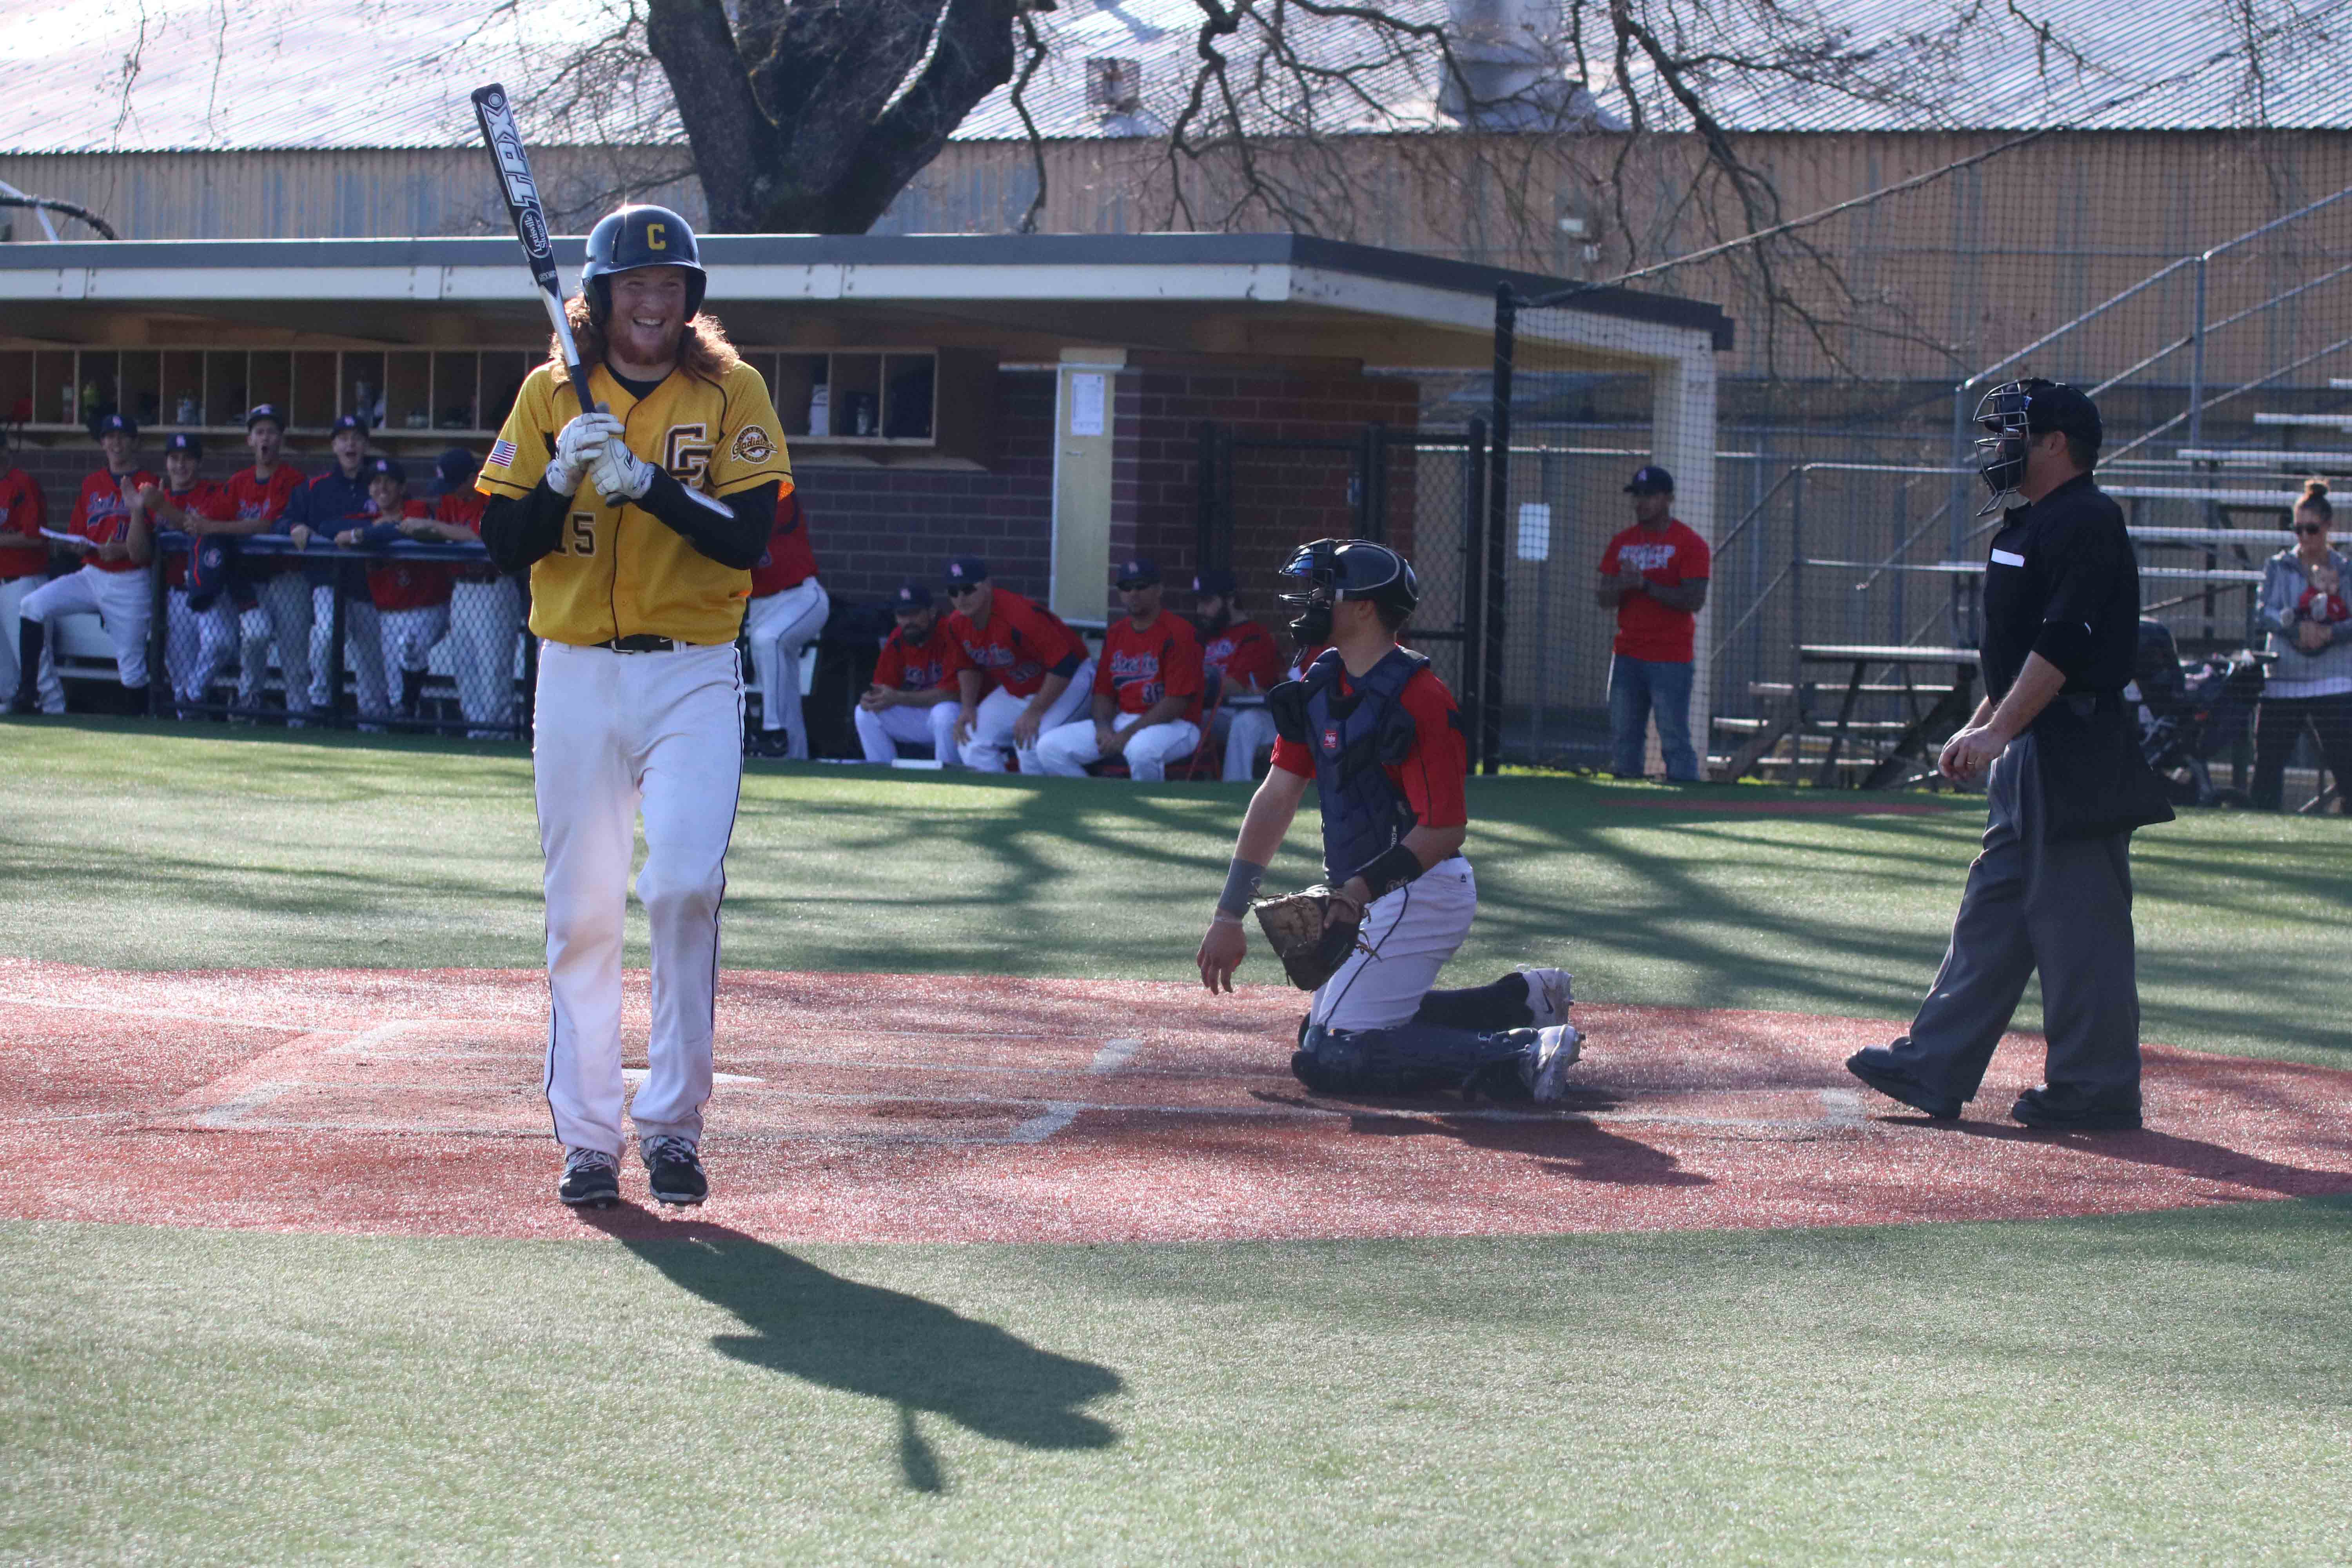 Chabot College catcher Jake McIntosh walks back to the dugout after striking out looking. Chabot batters struck out 27 times and didn't score a run in two games versus Santa Rosa Junior College to start the season.